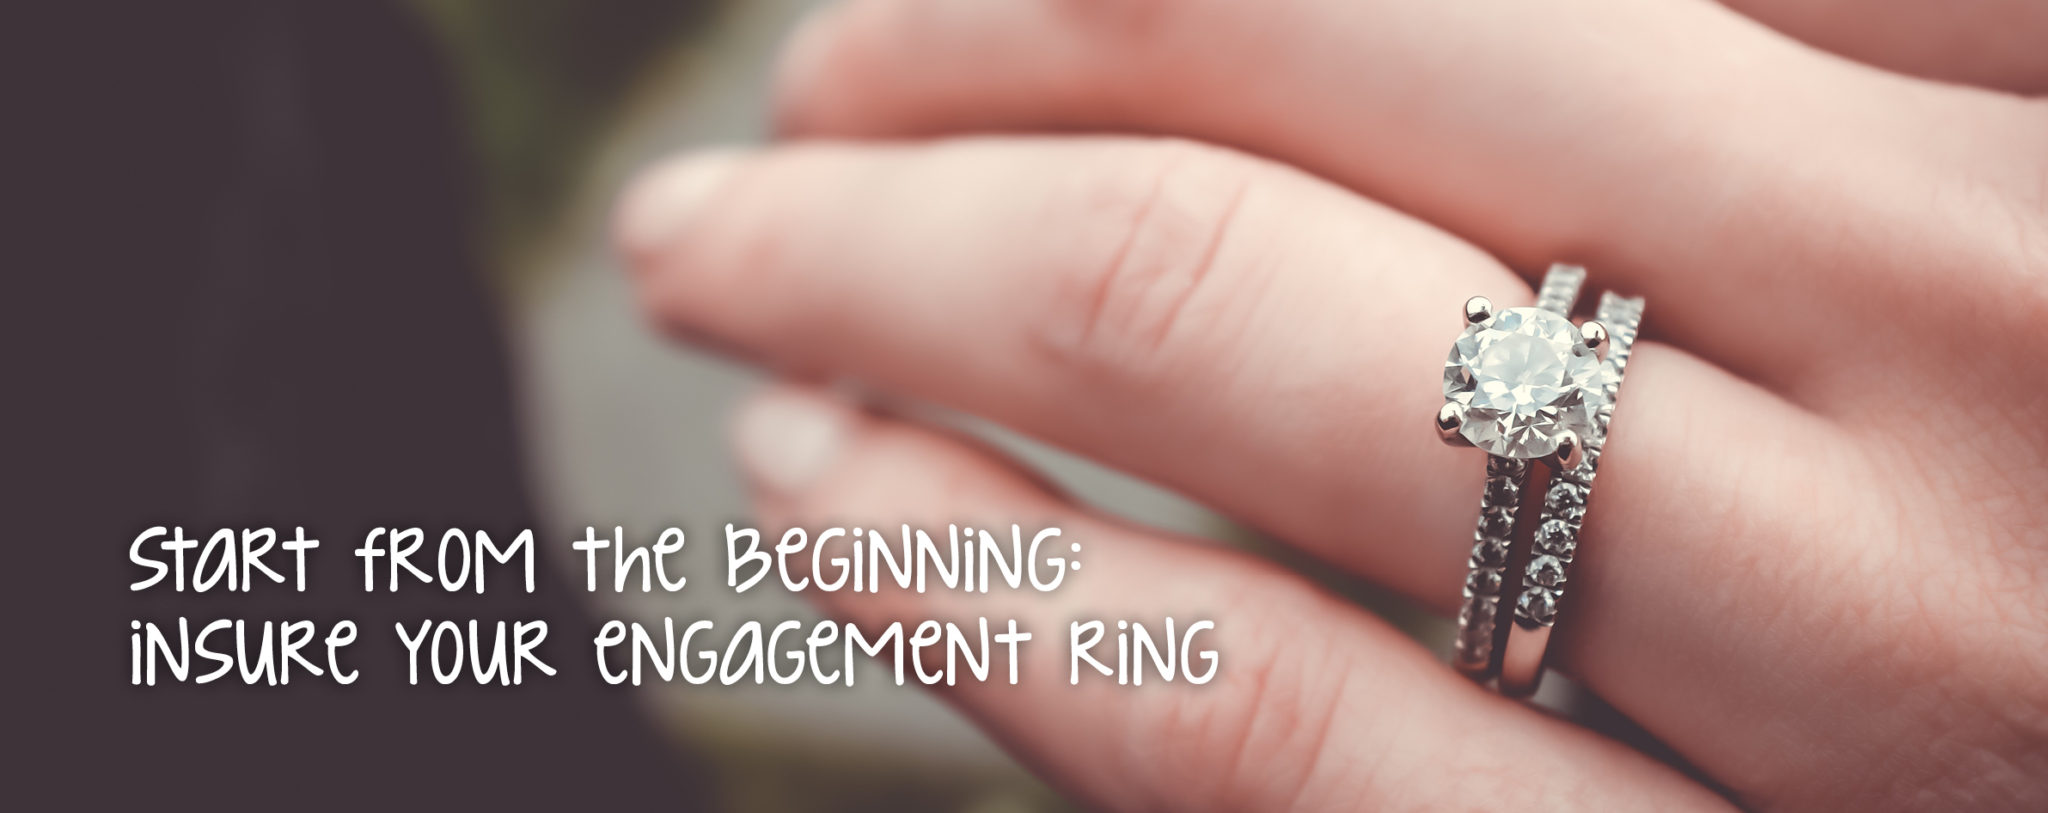 Insurance for Your Engagement Ring - American Heritage Insurance Group